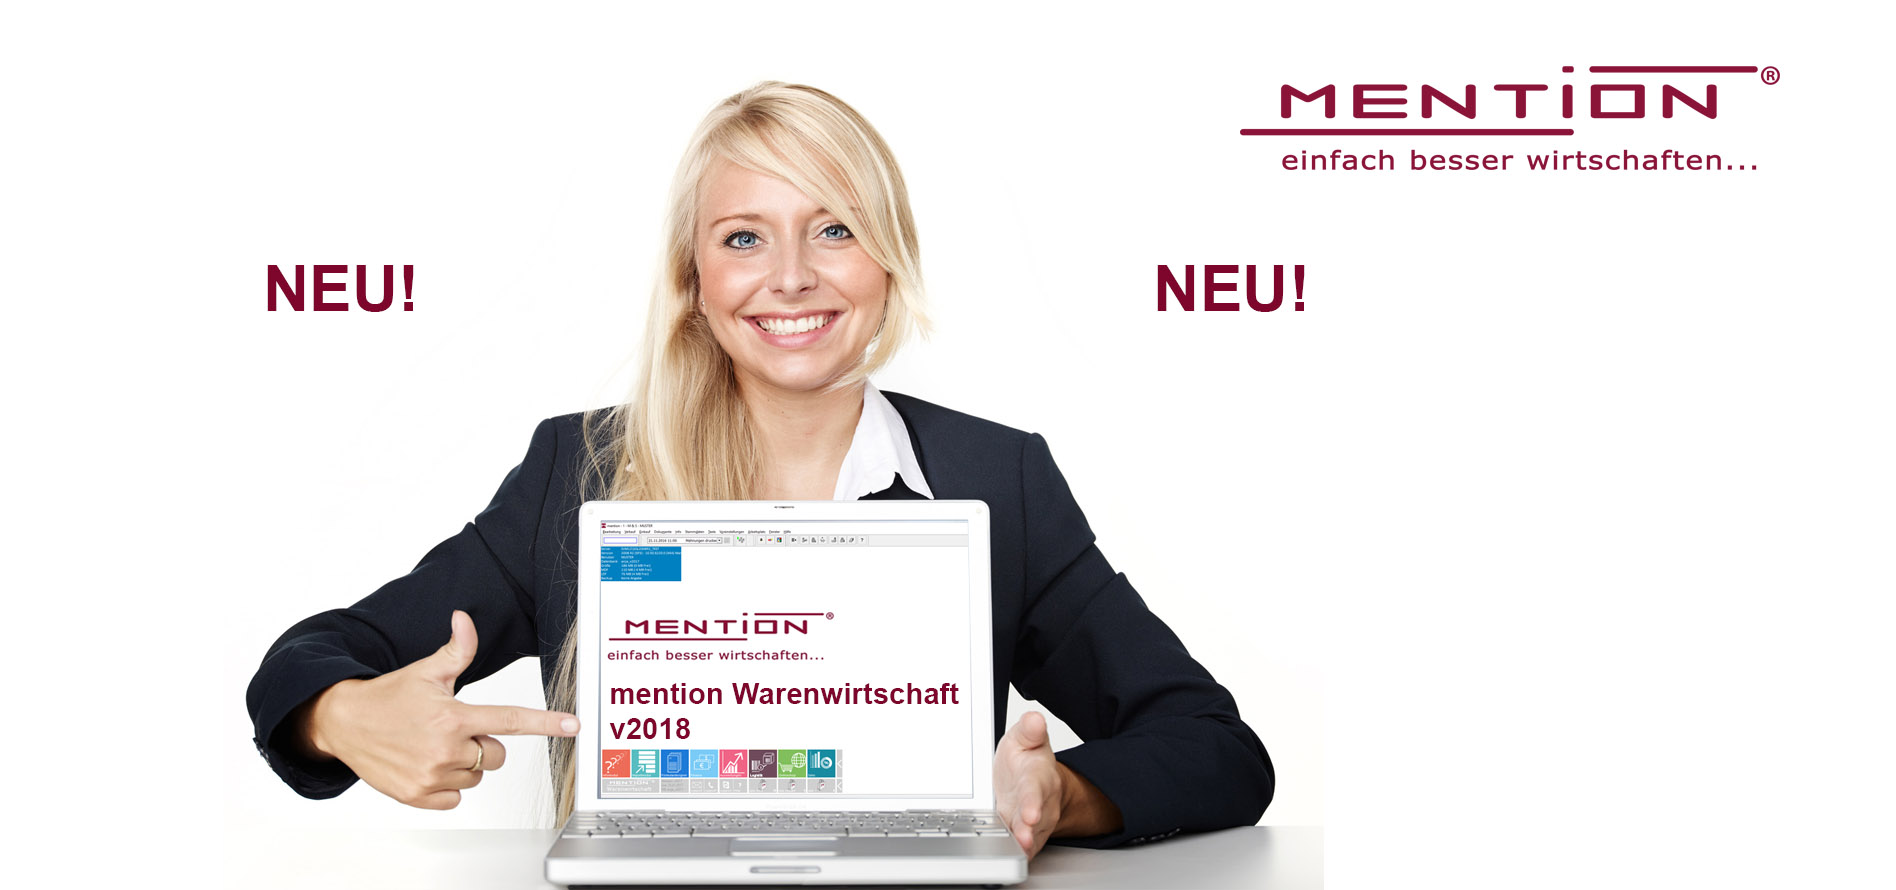 NEU! Mention v2018